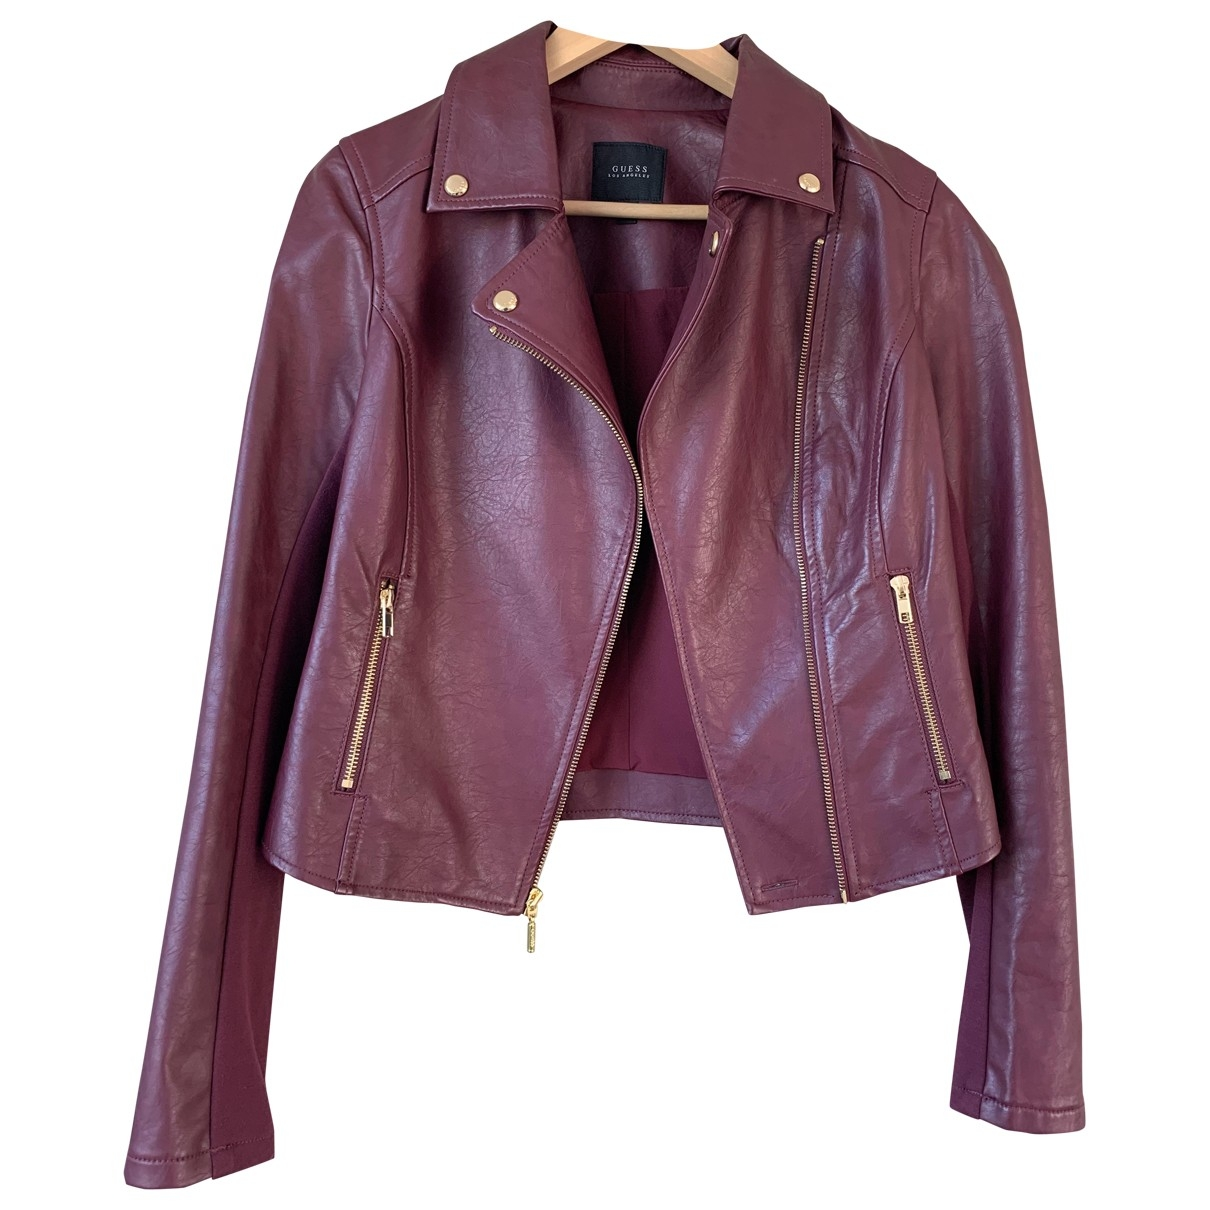 Guess \N Jacke in  Bordeauxrot Synthetik